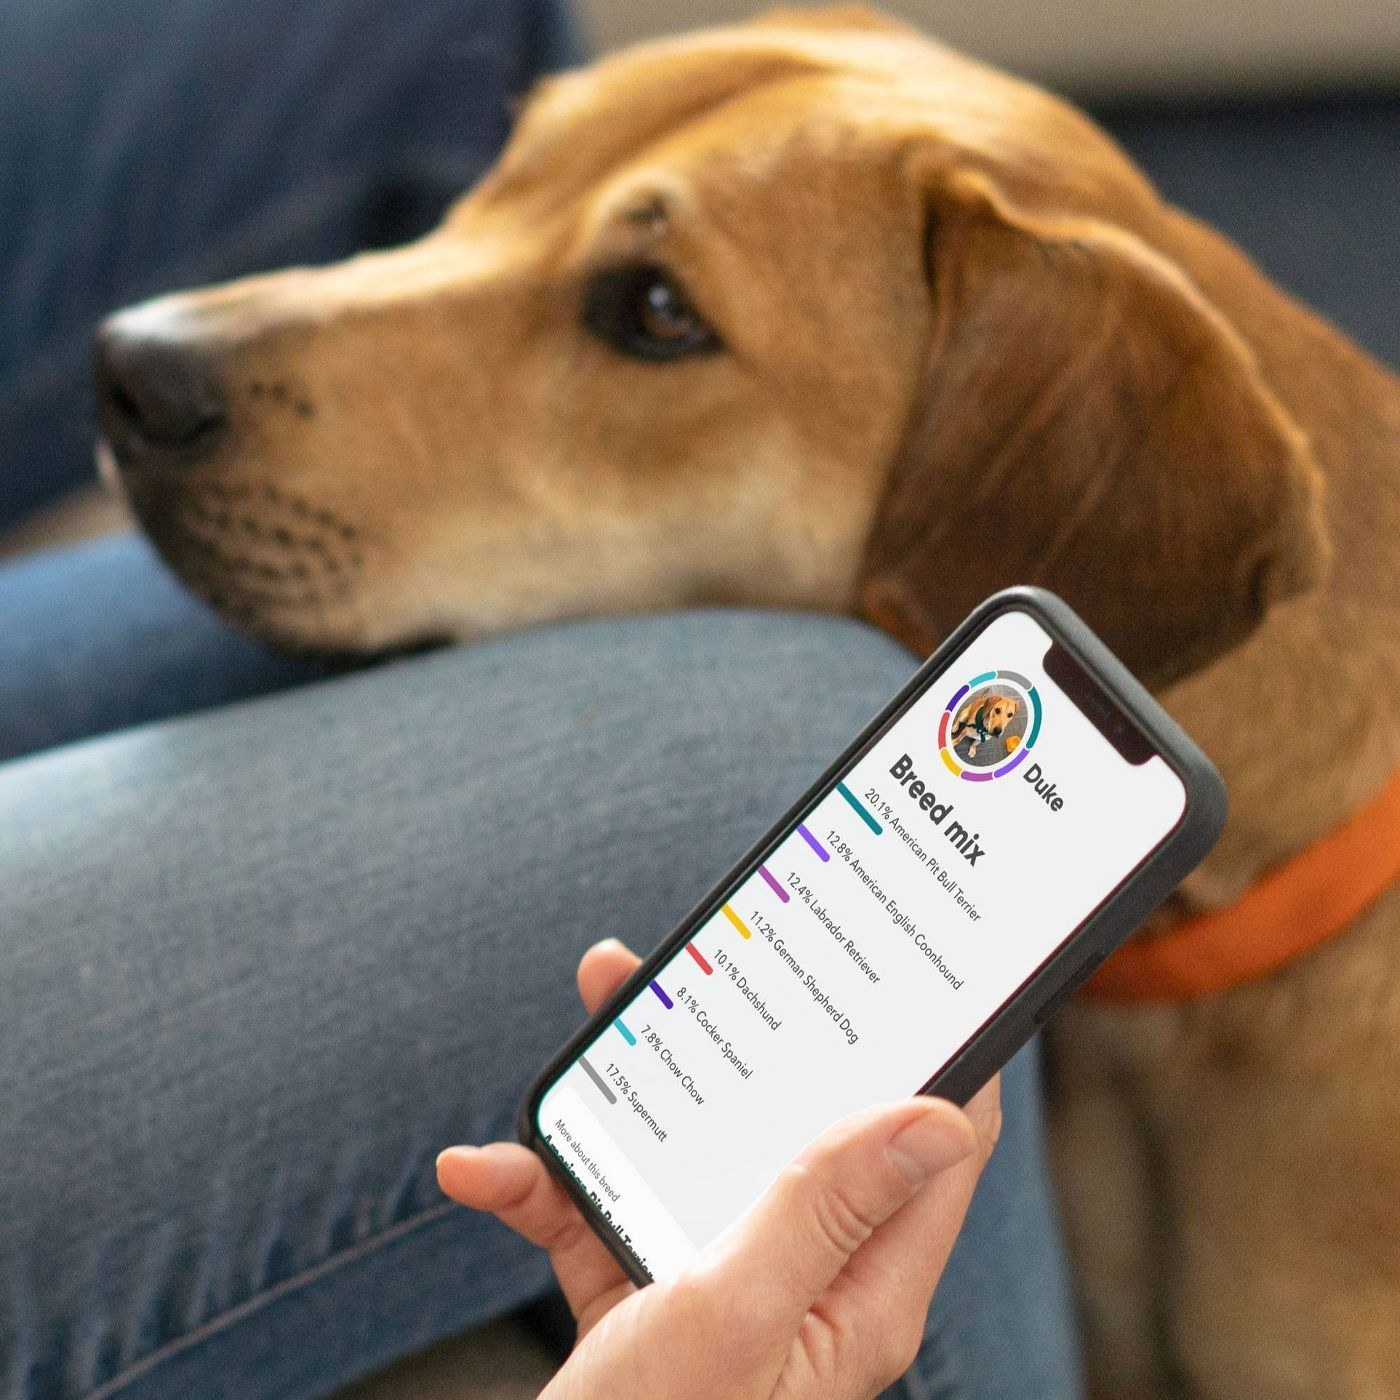 A person looks at the results from the test on their phone while the dog waits in their lap